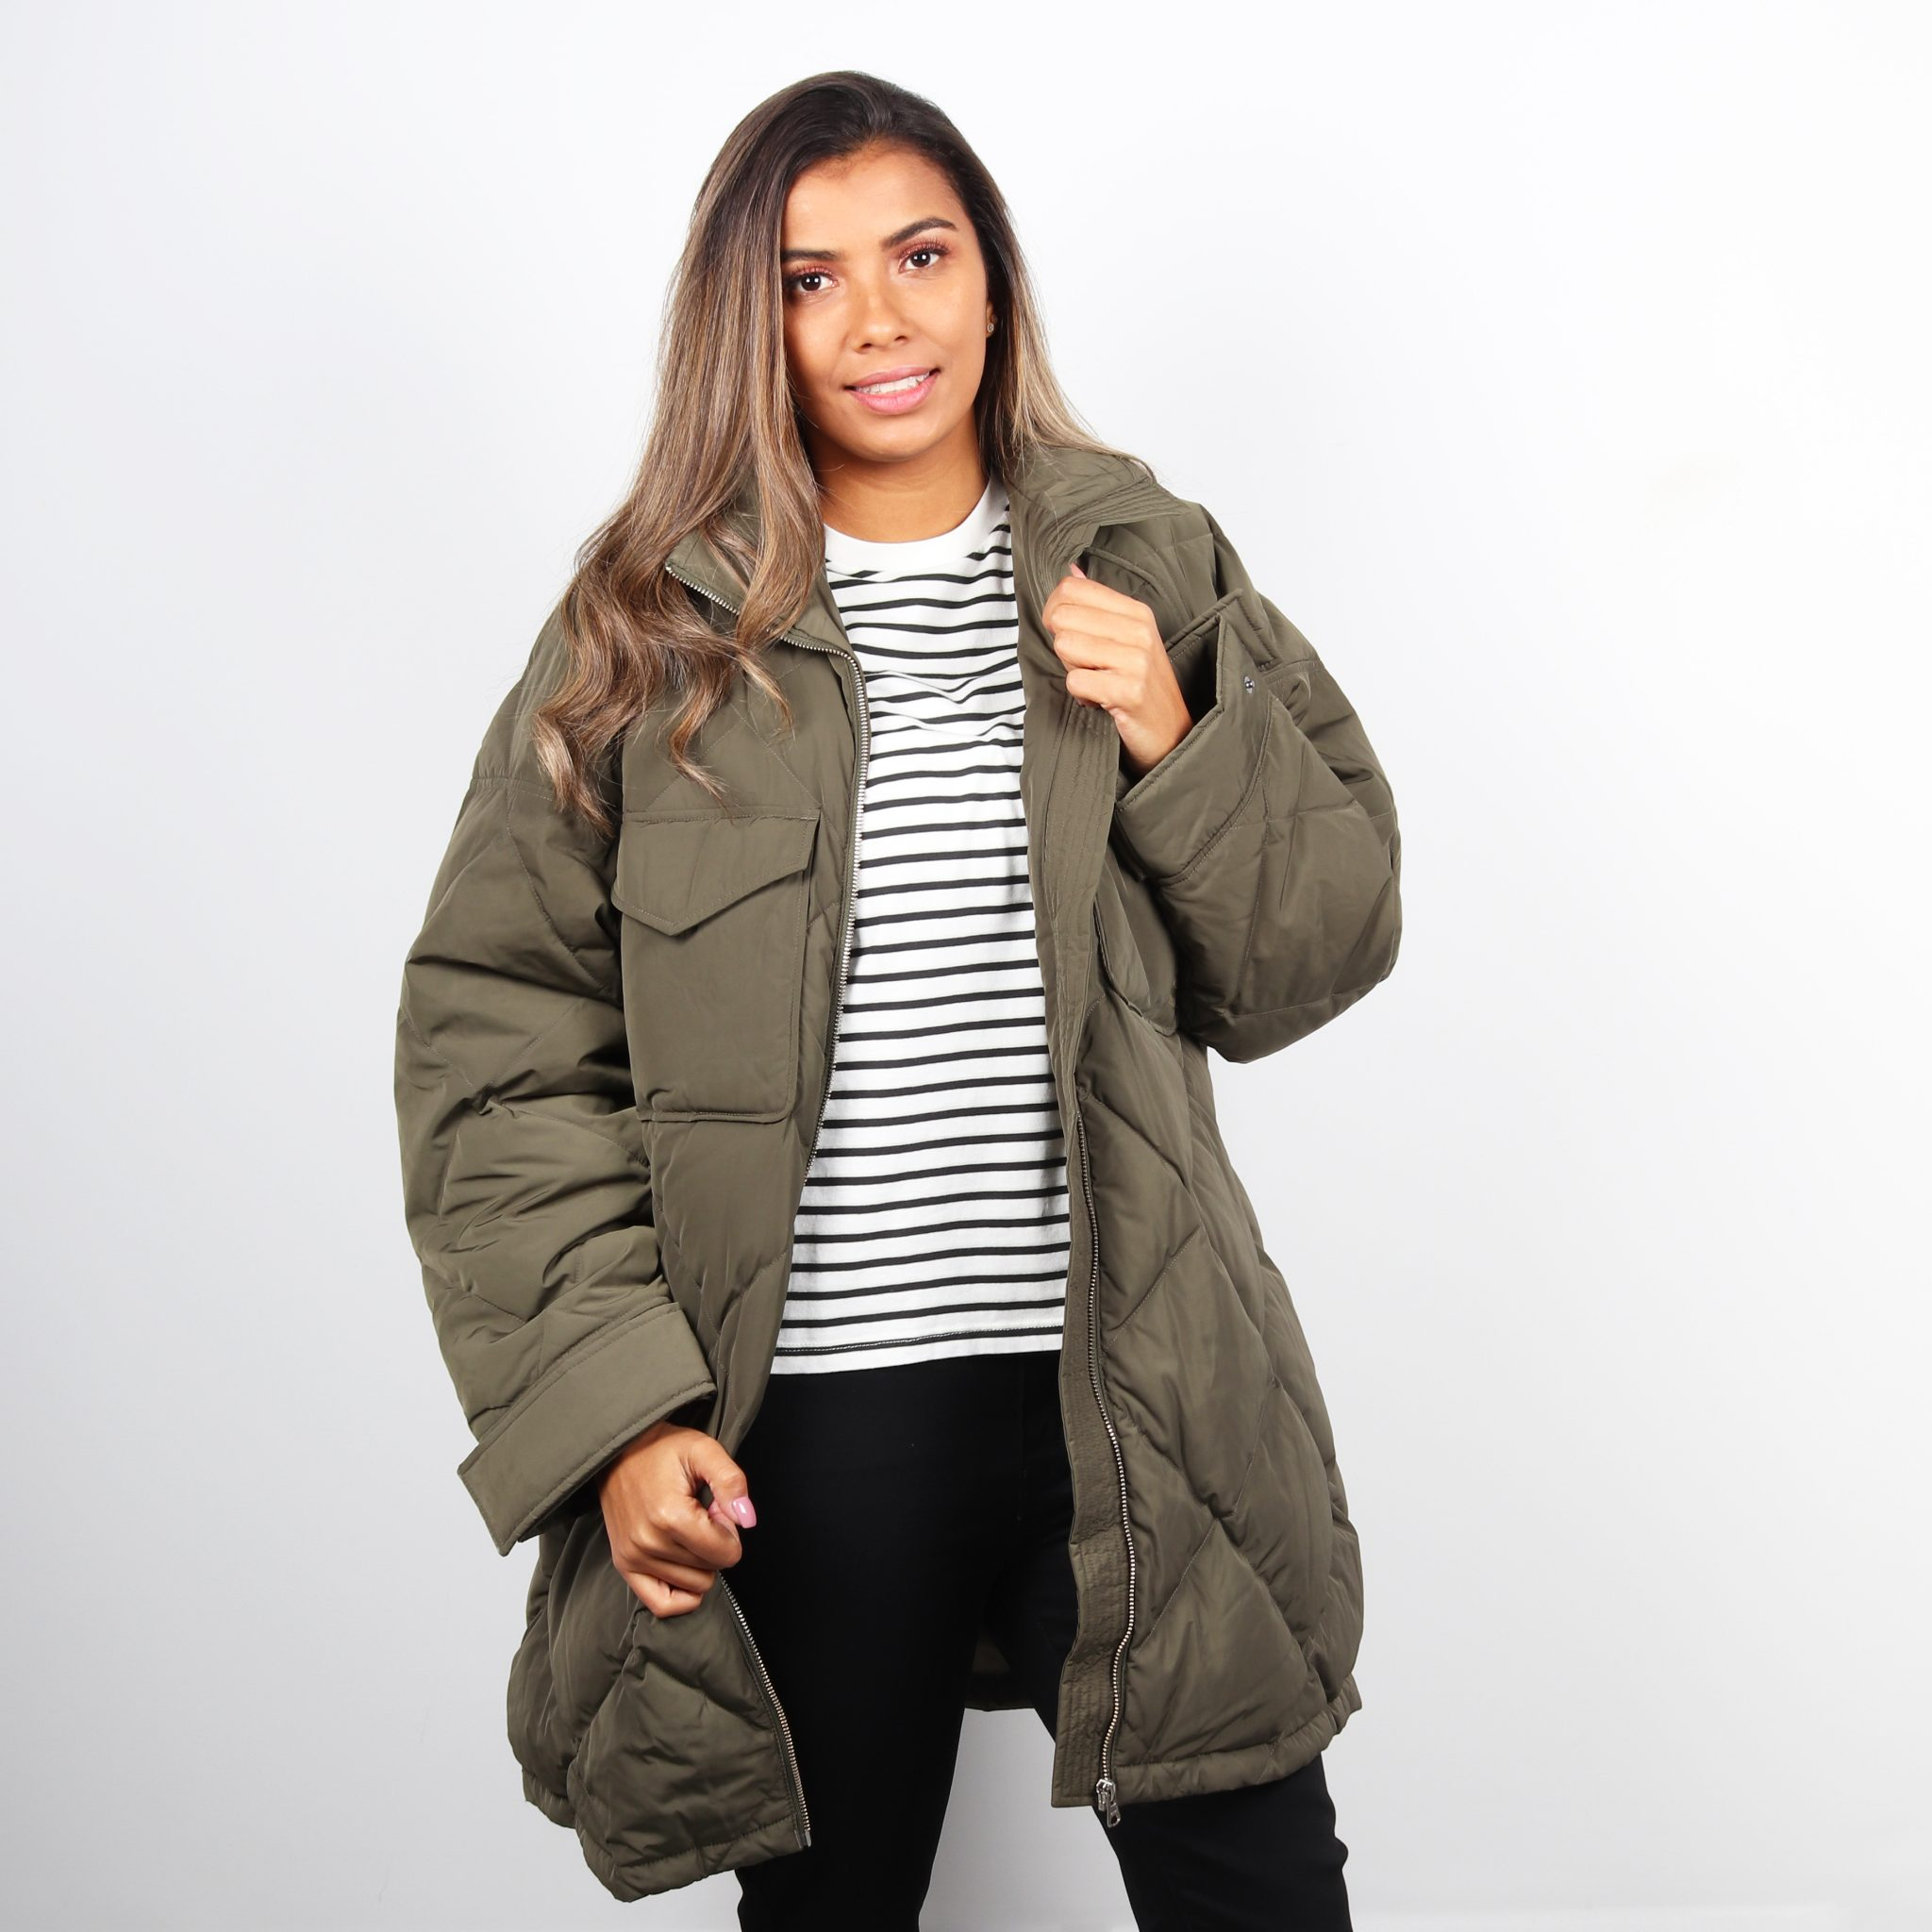 Levis Womens Diamond Quilted Puffer Jacket - Olive Night 0